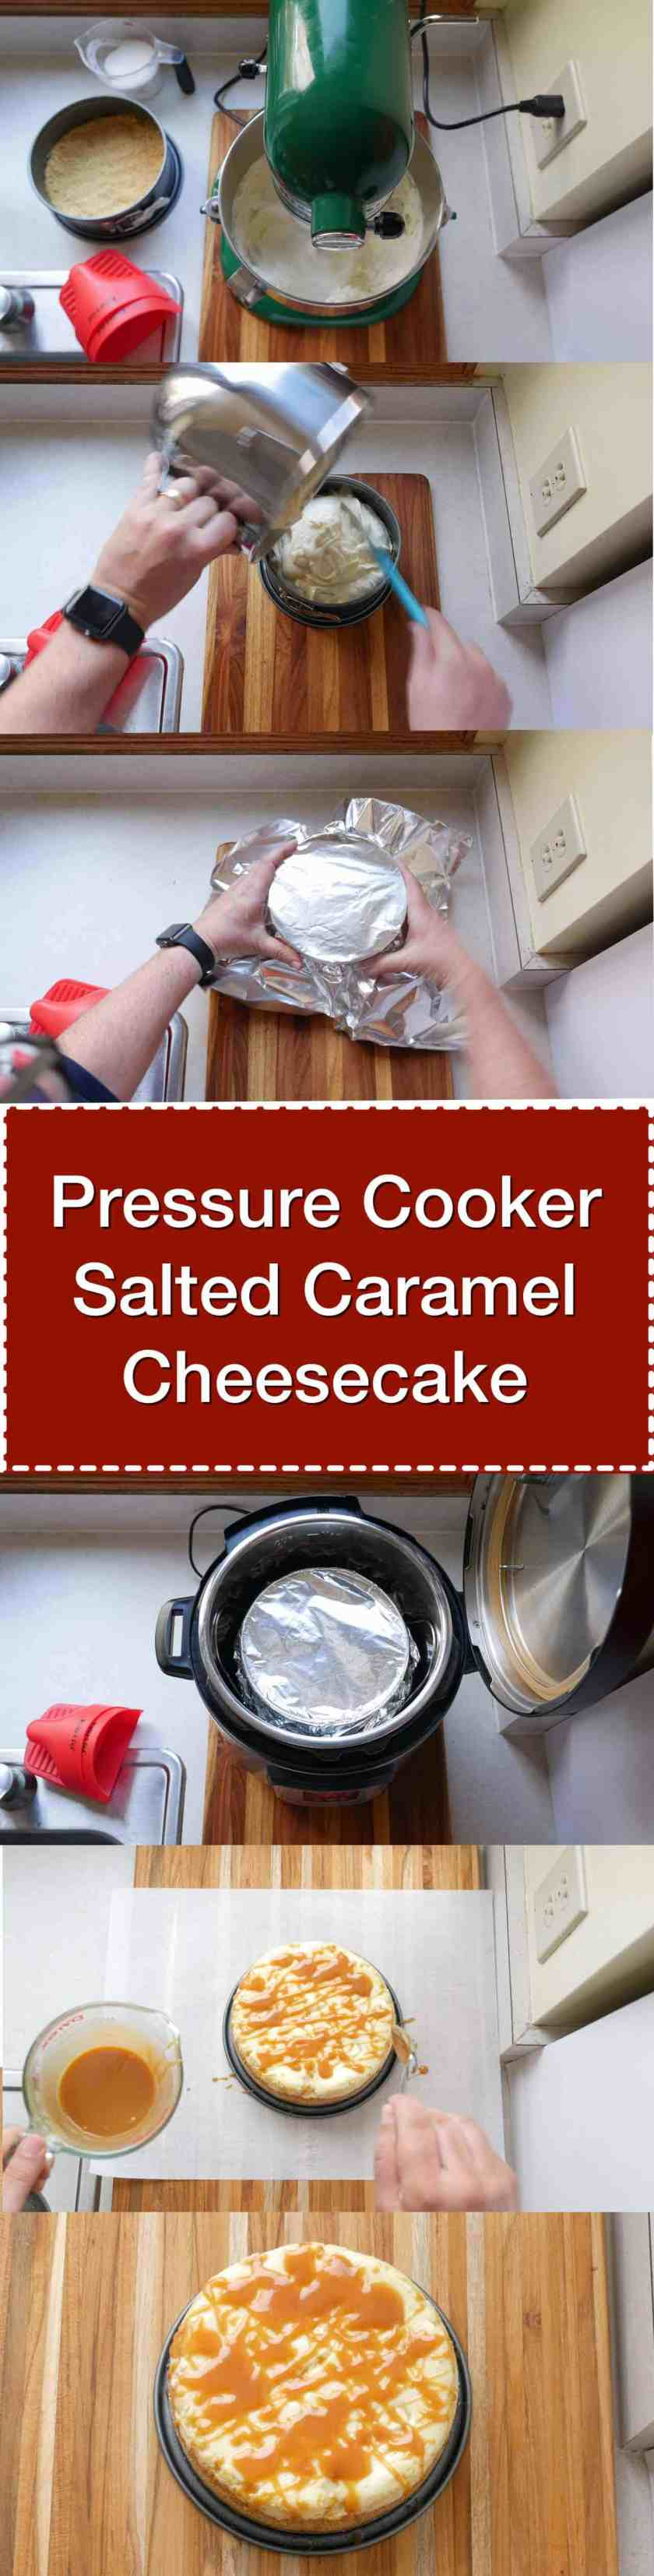 Pressure Cooker Salted Caramel Cheesecake recipe. Sweet salted caramel drizzled on top of a smooth, easy pressure cooker cheesecake.